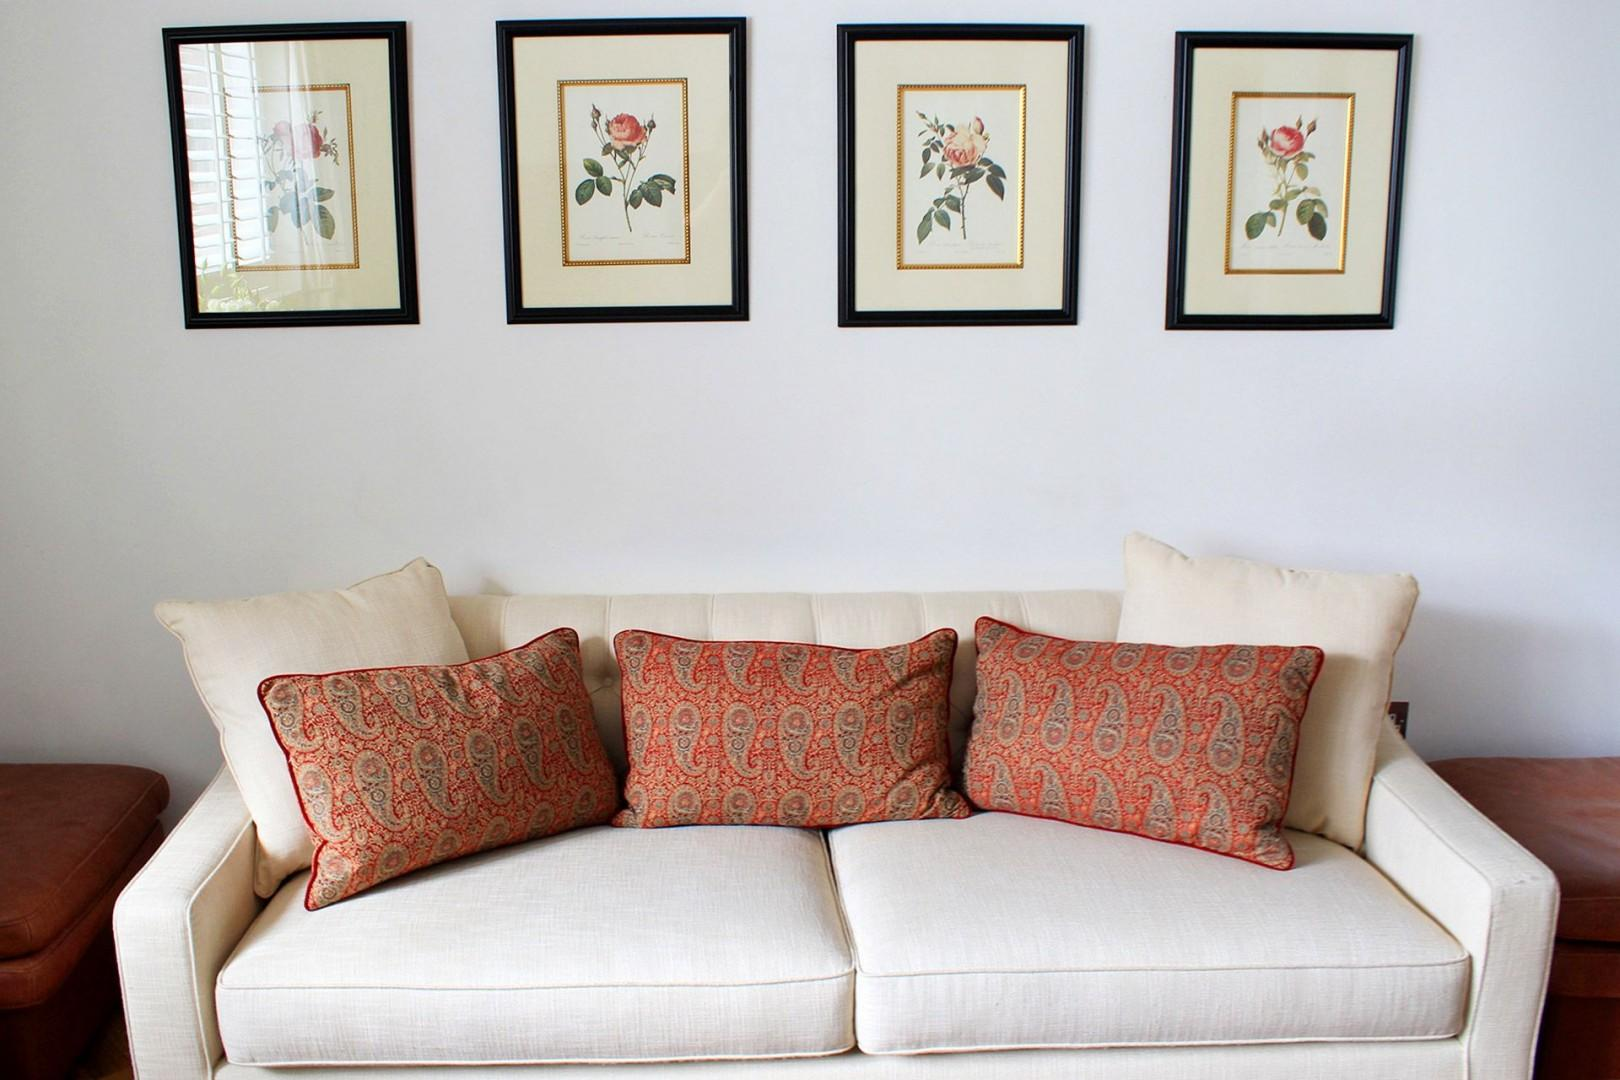 Unwind at the end of a long day on the comfortable sofa